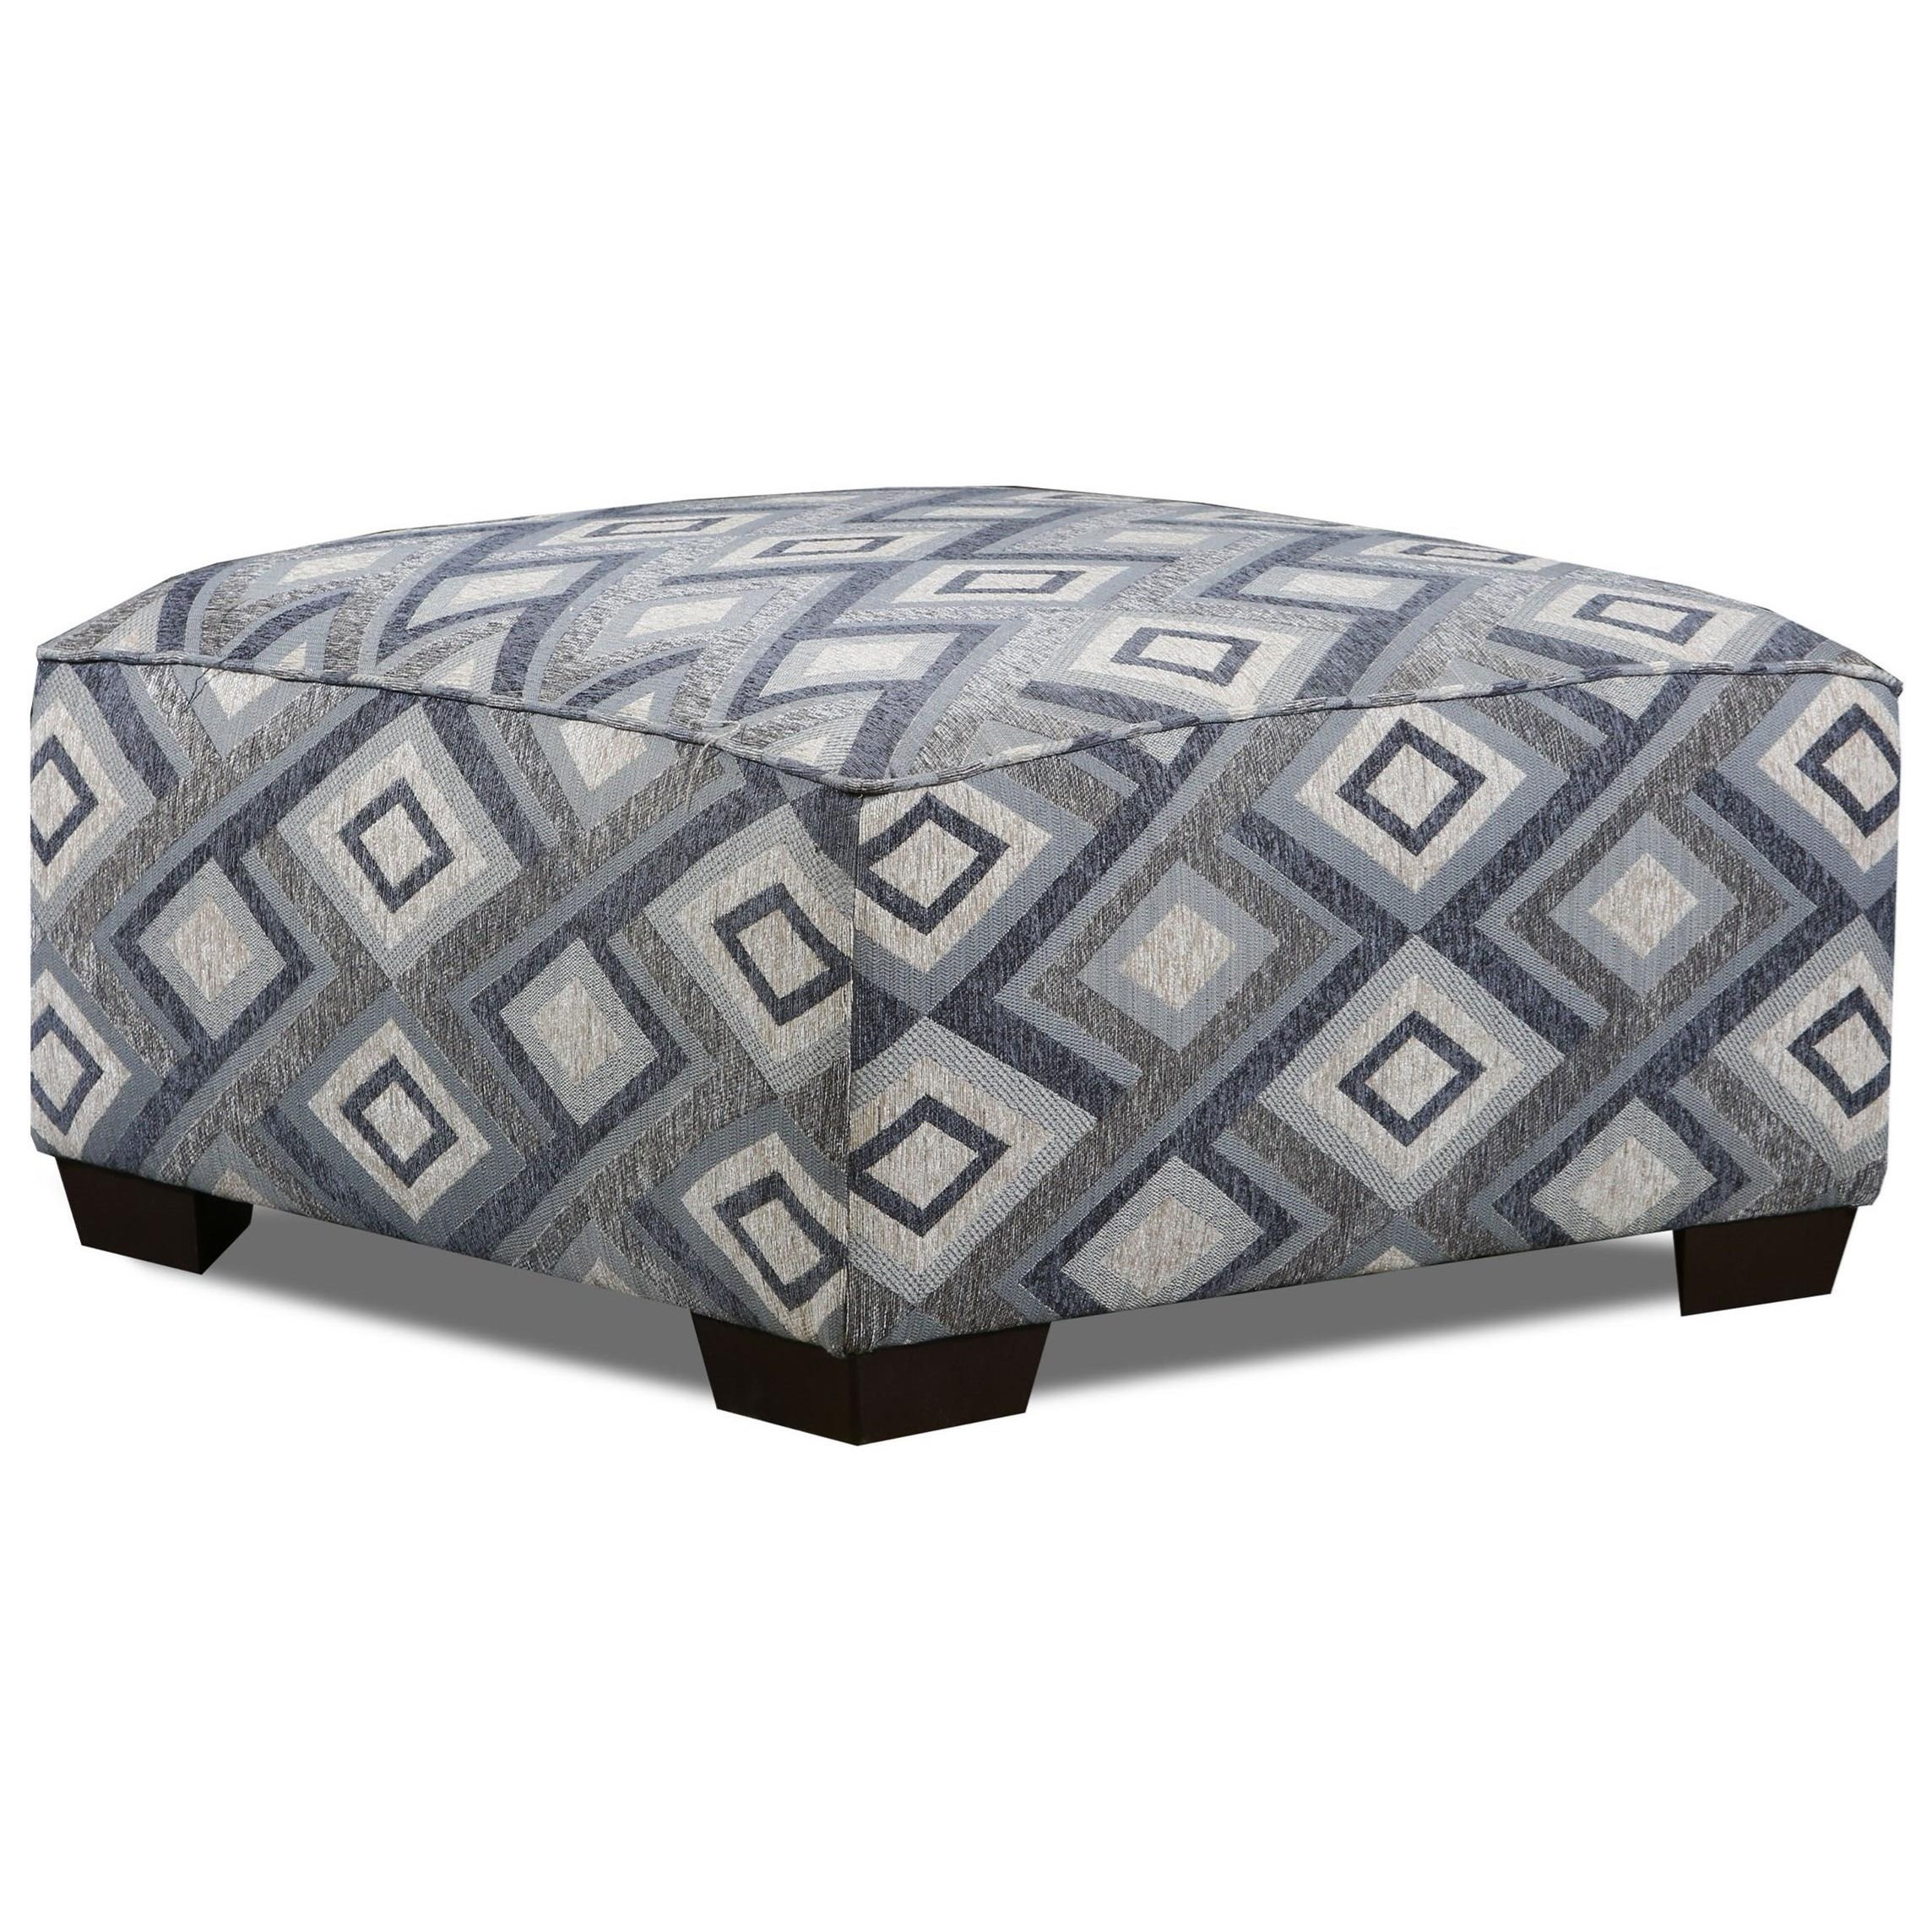 8200 Ottoman by Peak Living at Prime Brothers Furniture